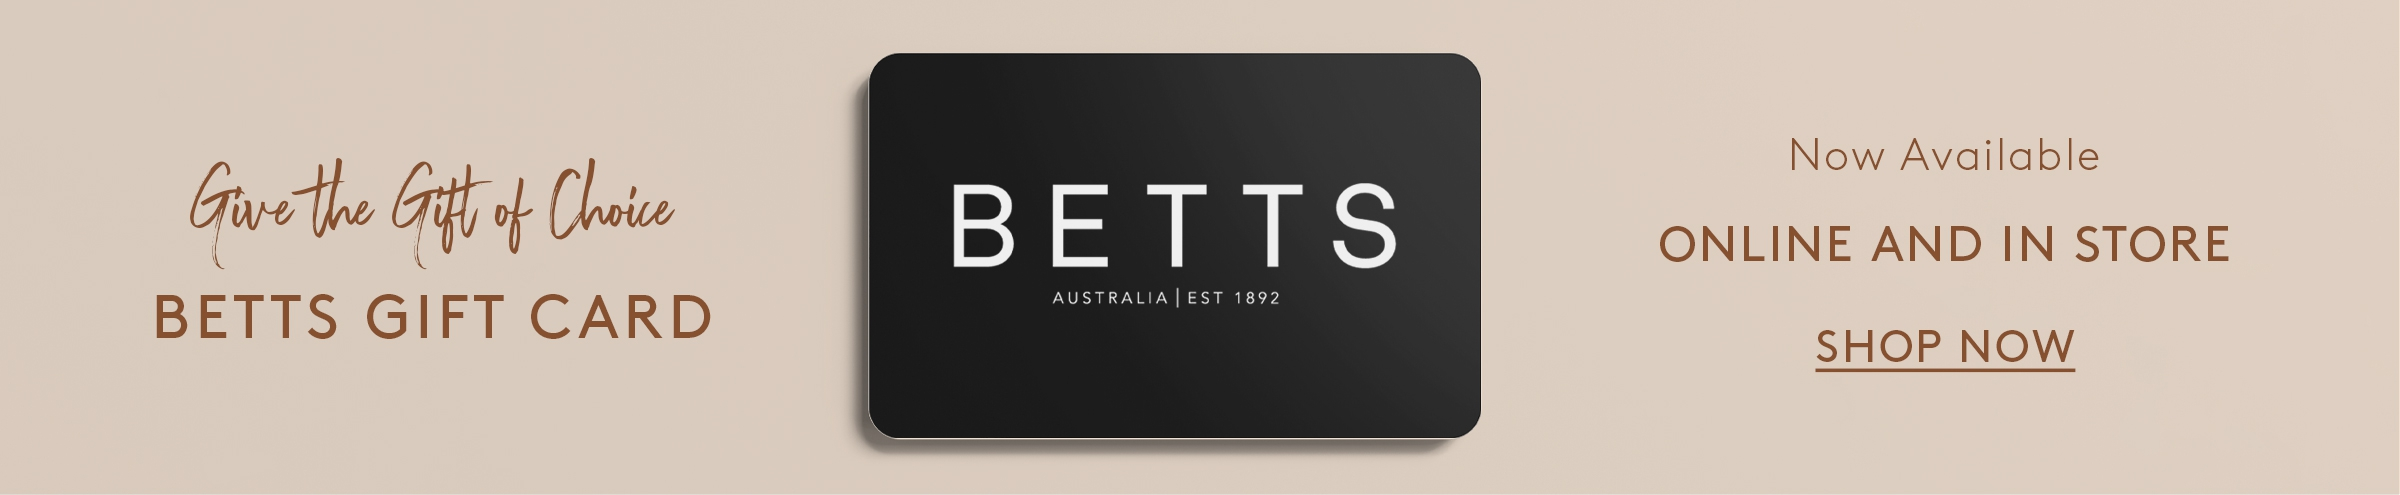 BETTS | Online Gift Card | hmpg banner 2400 x 495